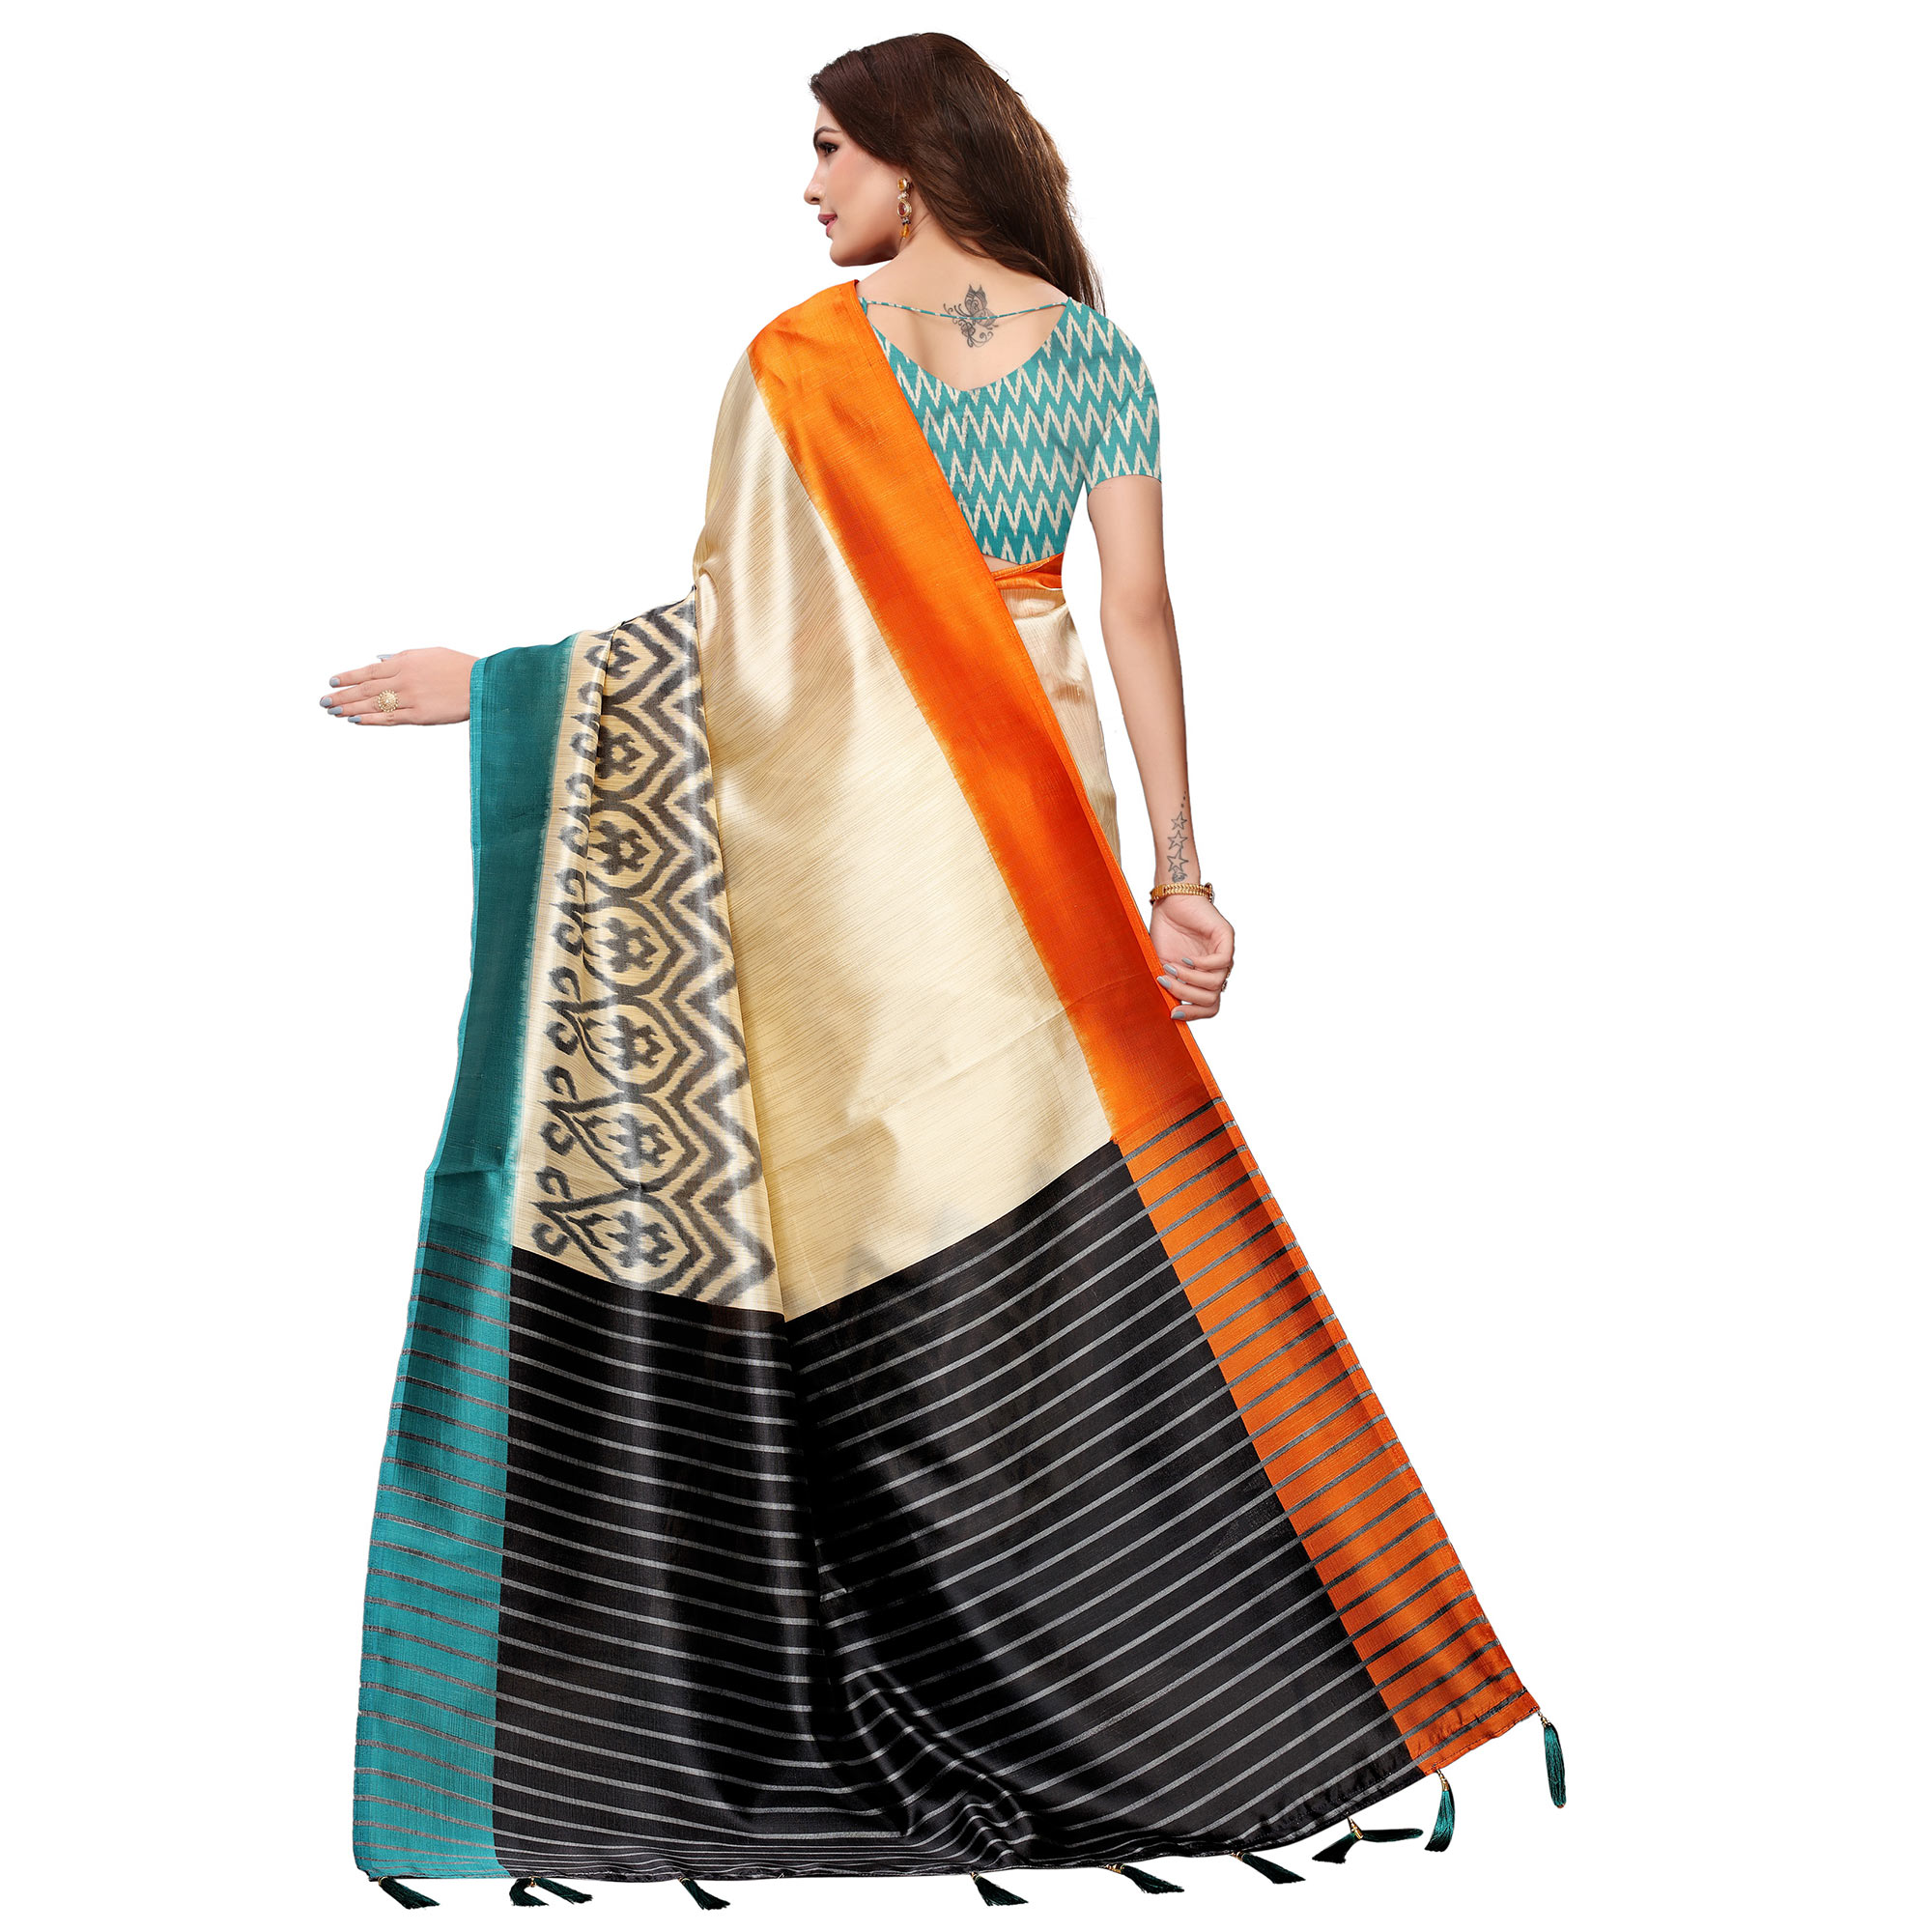 Ravishing Cream-Teal Blue Colored Festive Wear Mysore Silk Saree With Tassels